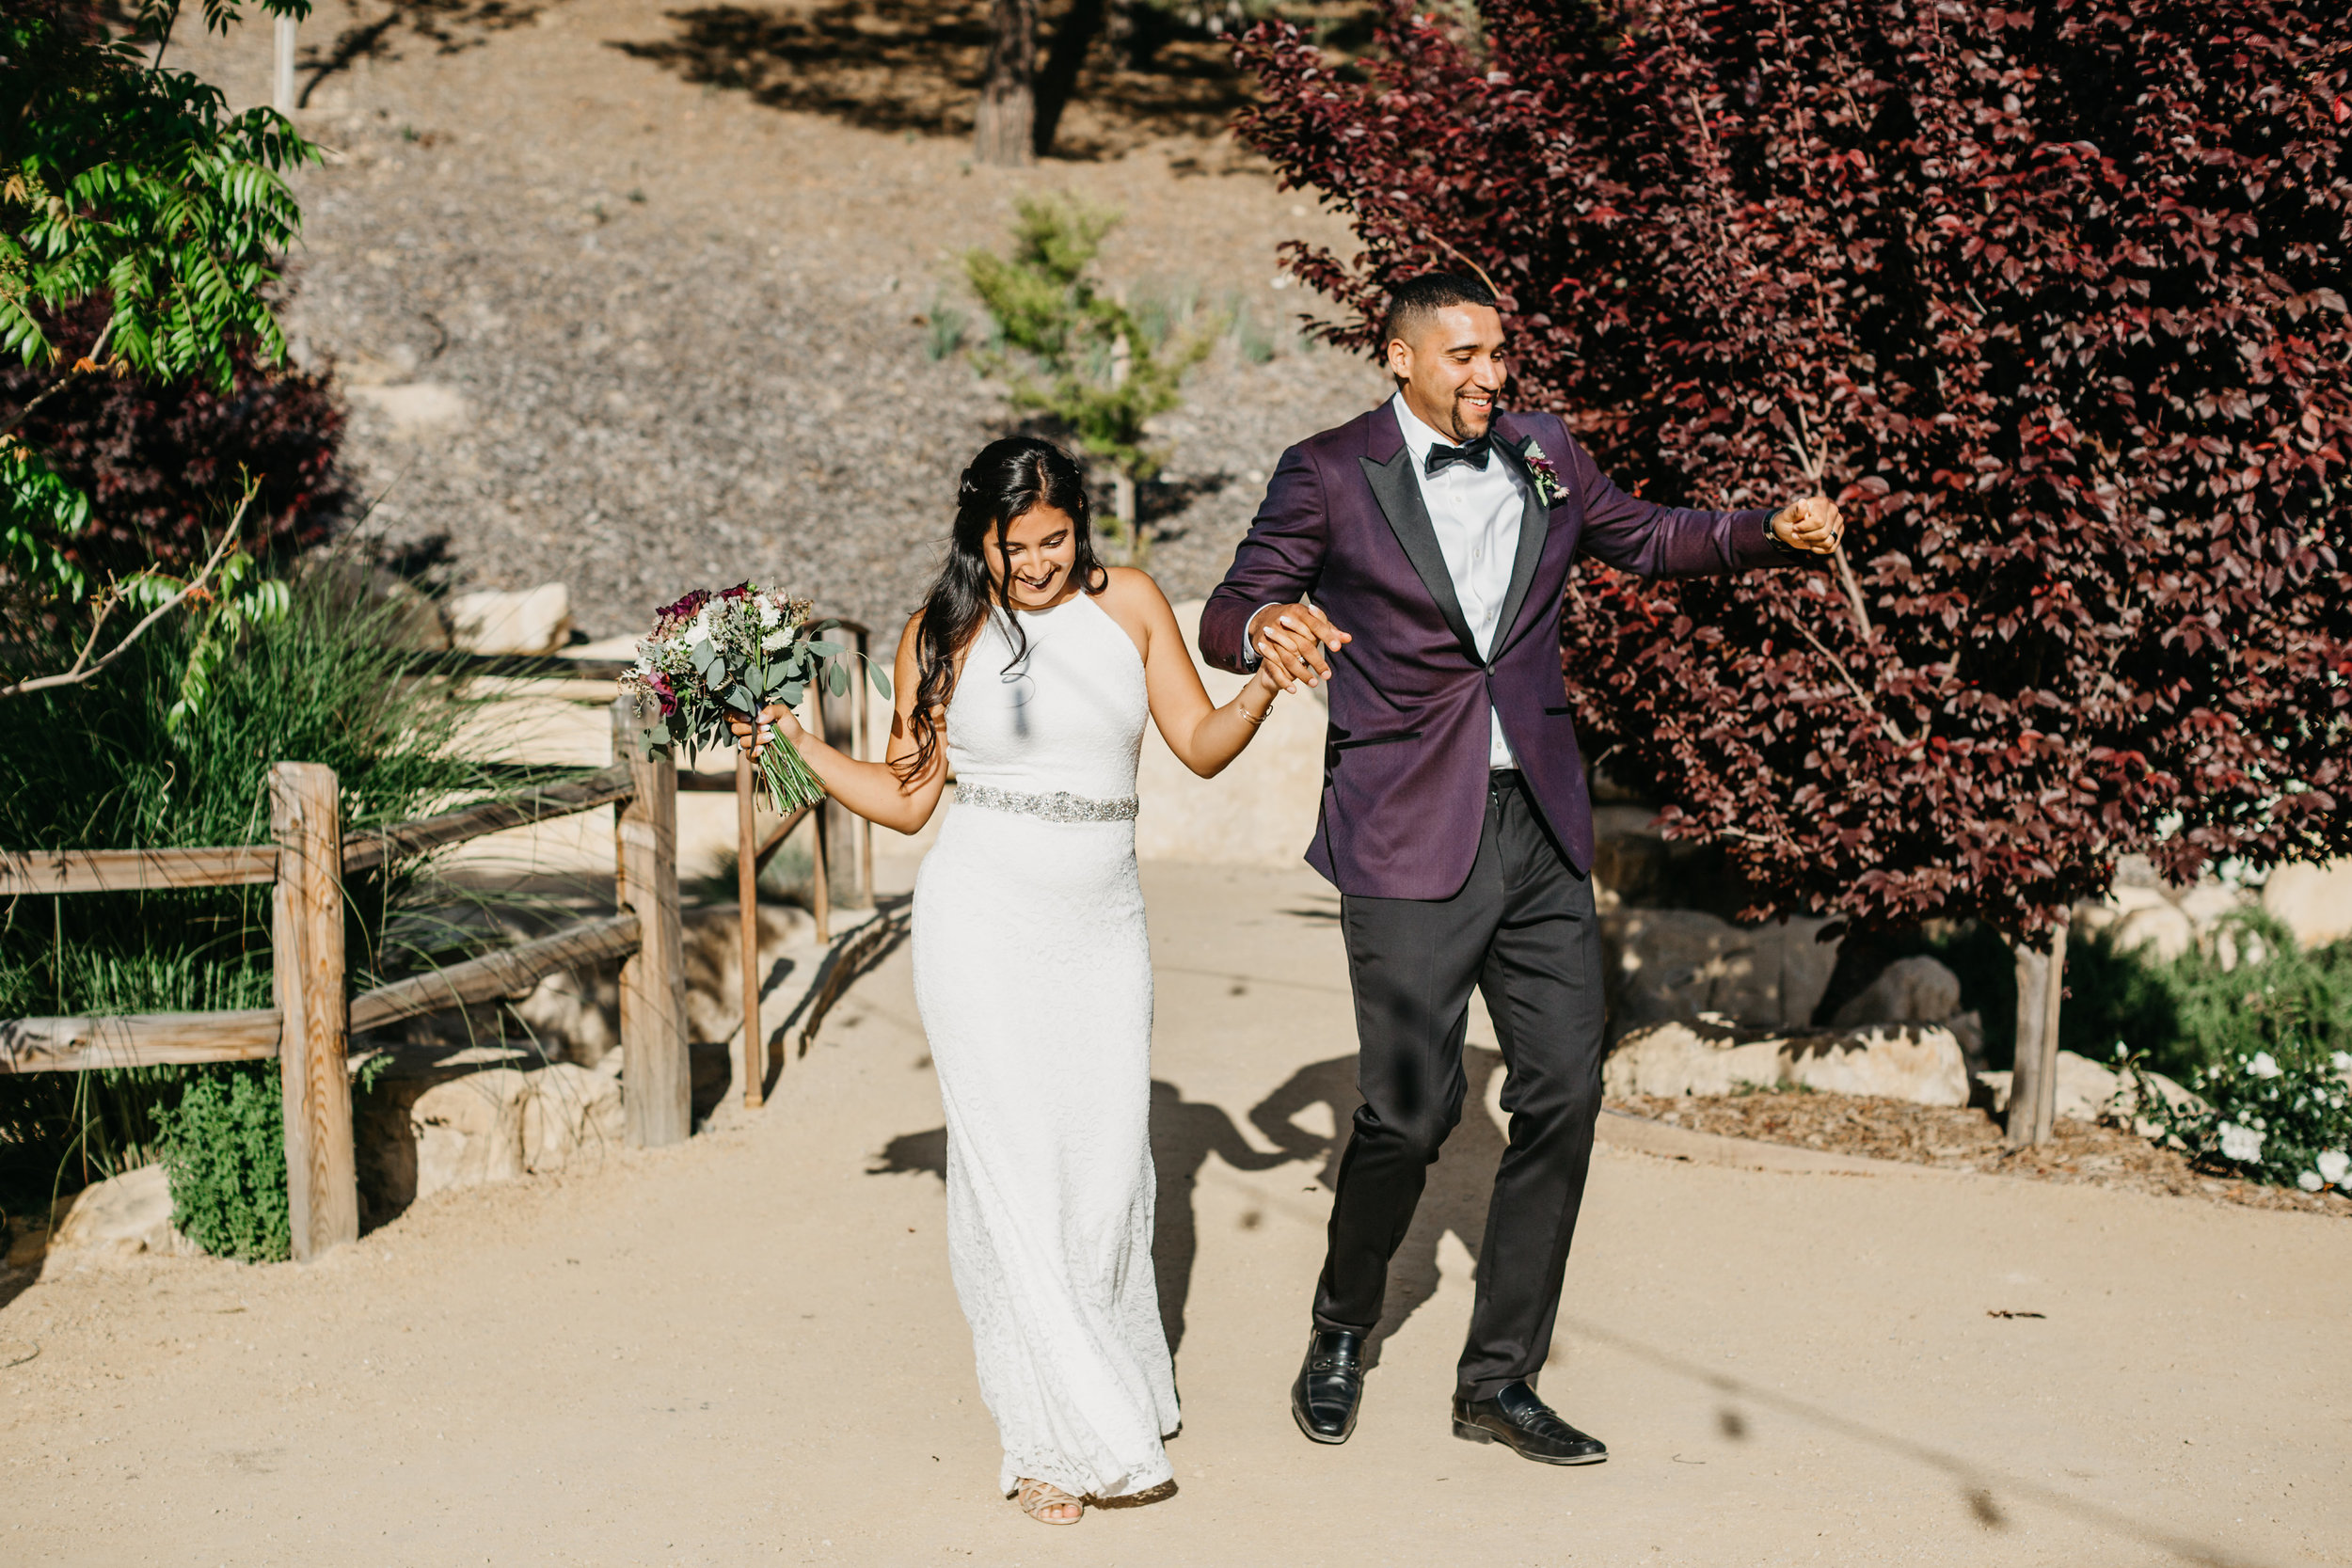 Paso-Robles-Wedding-Diana-Lake-Photography-K+A846.jpg